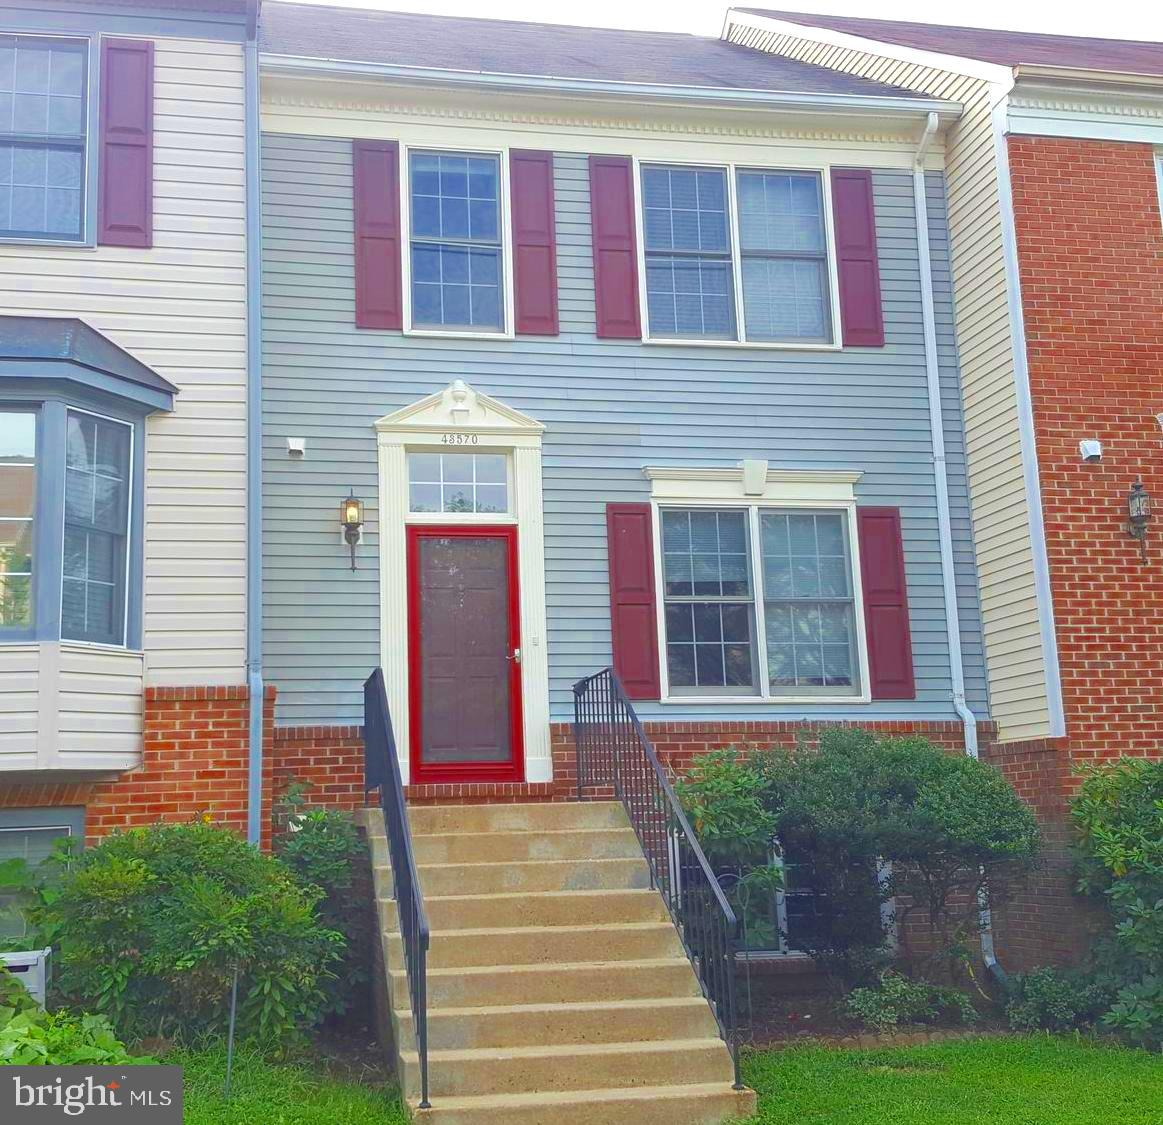 20147 3 Bedroom Home For Sale